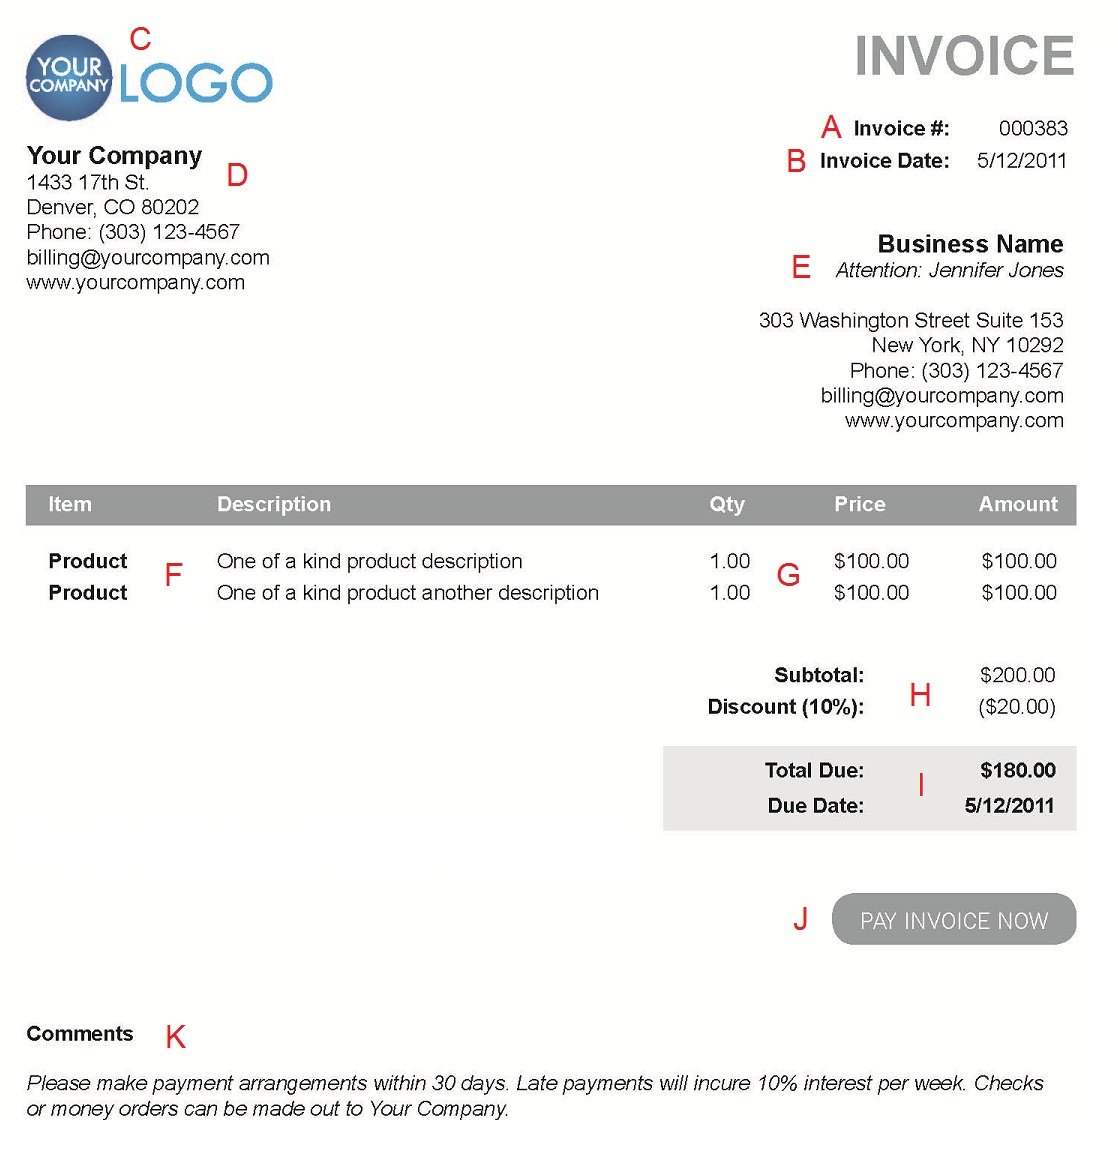 Aaaaeroincus  Inspiring The  Different Sections Of An Electronic Payment Invoice With Foxy A  With Delightful Invoice Costs Also Taxi Invoice Template In Addition Prforma Invoice And Buy Invoice As Well As Australian Invoice Requirements Additionally What Needs To Be On An Invoice From Paysimplecom With Aaaaeroincus  Foxy The  Different Sections Of An Electronic Payment Invoice With Delightful A  And Inspiring Invoice Costs Also Taxi Invoice Template In Addition Prforma Invoice From Paysimplecom